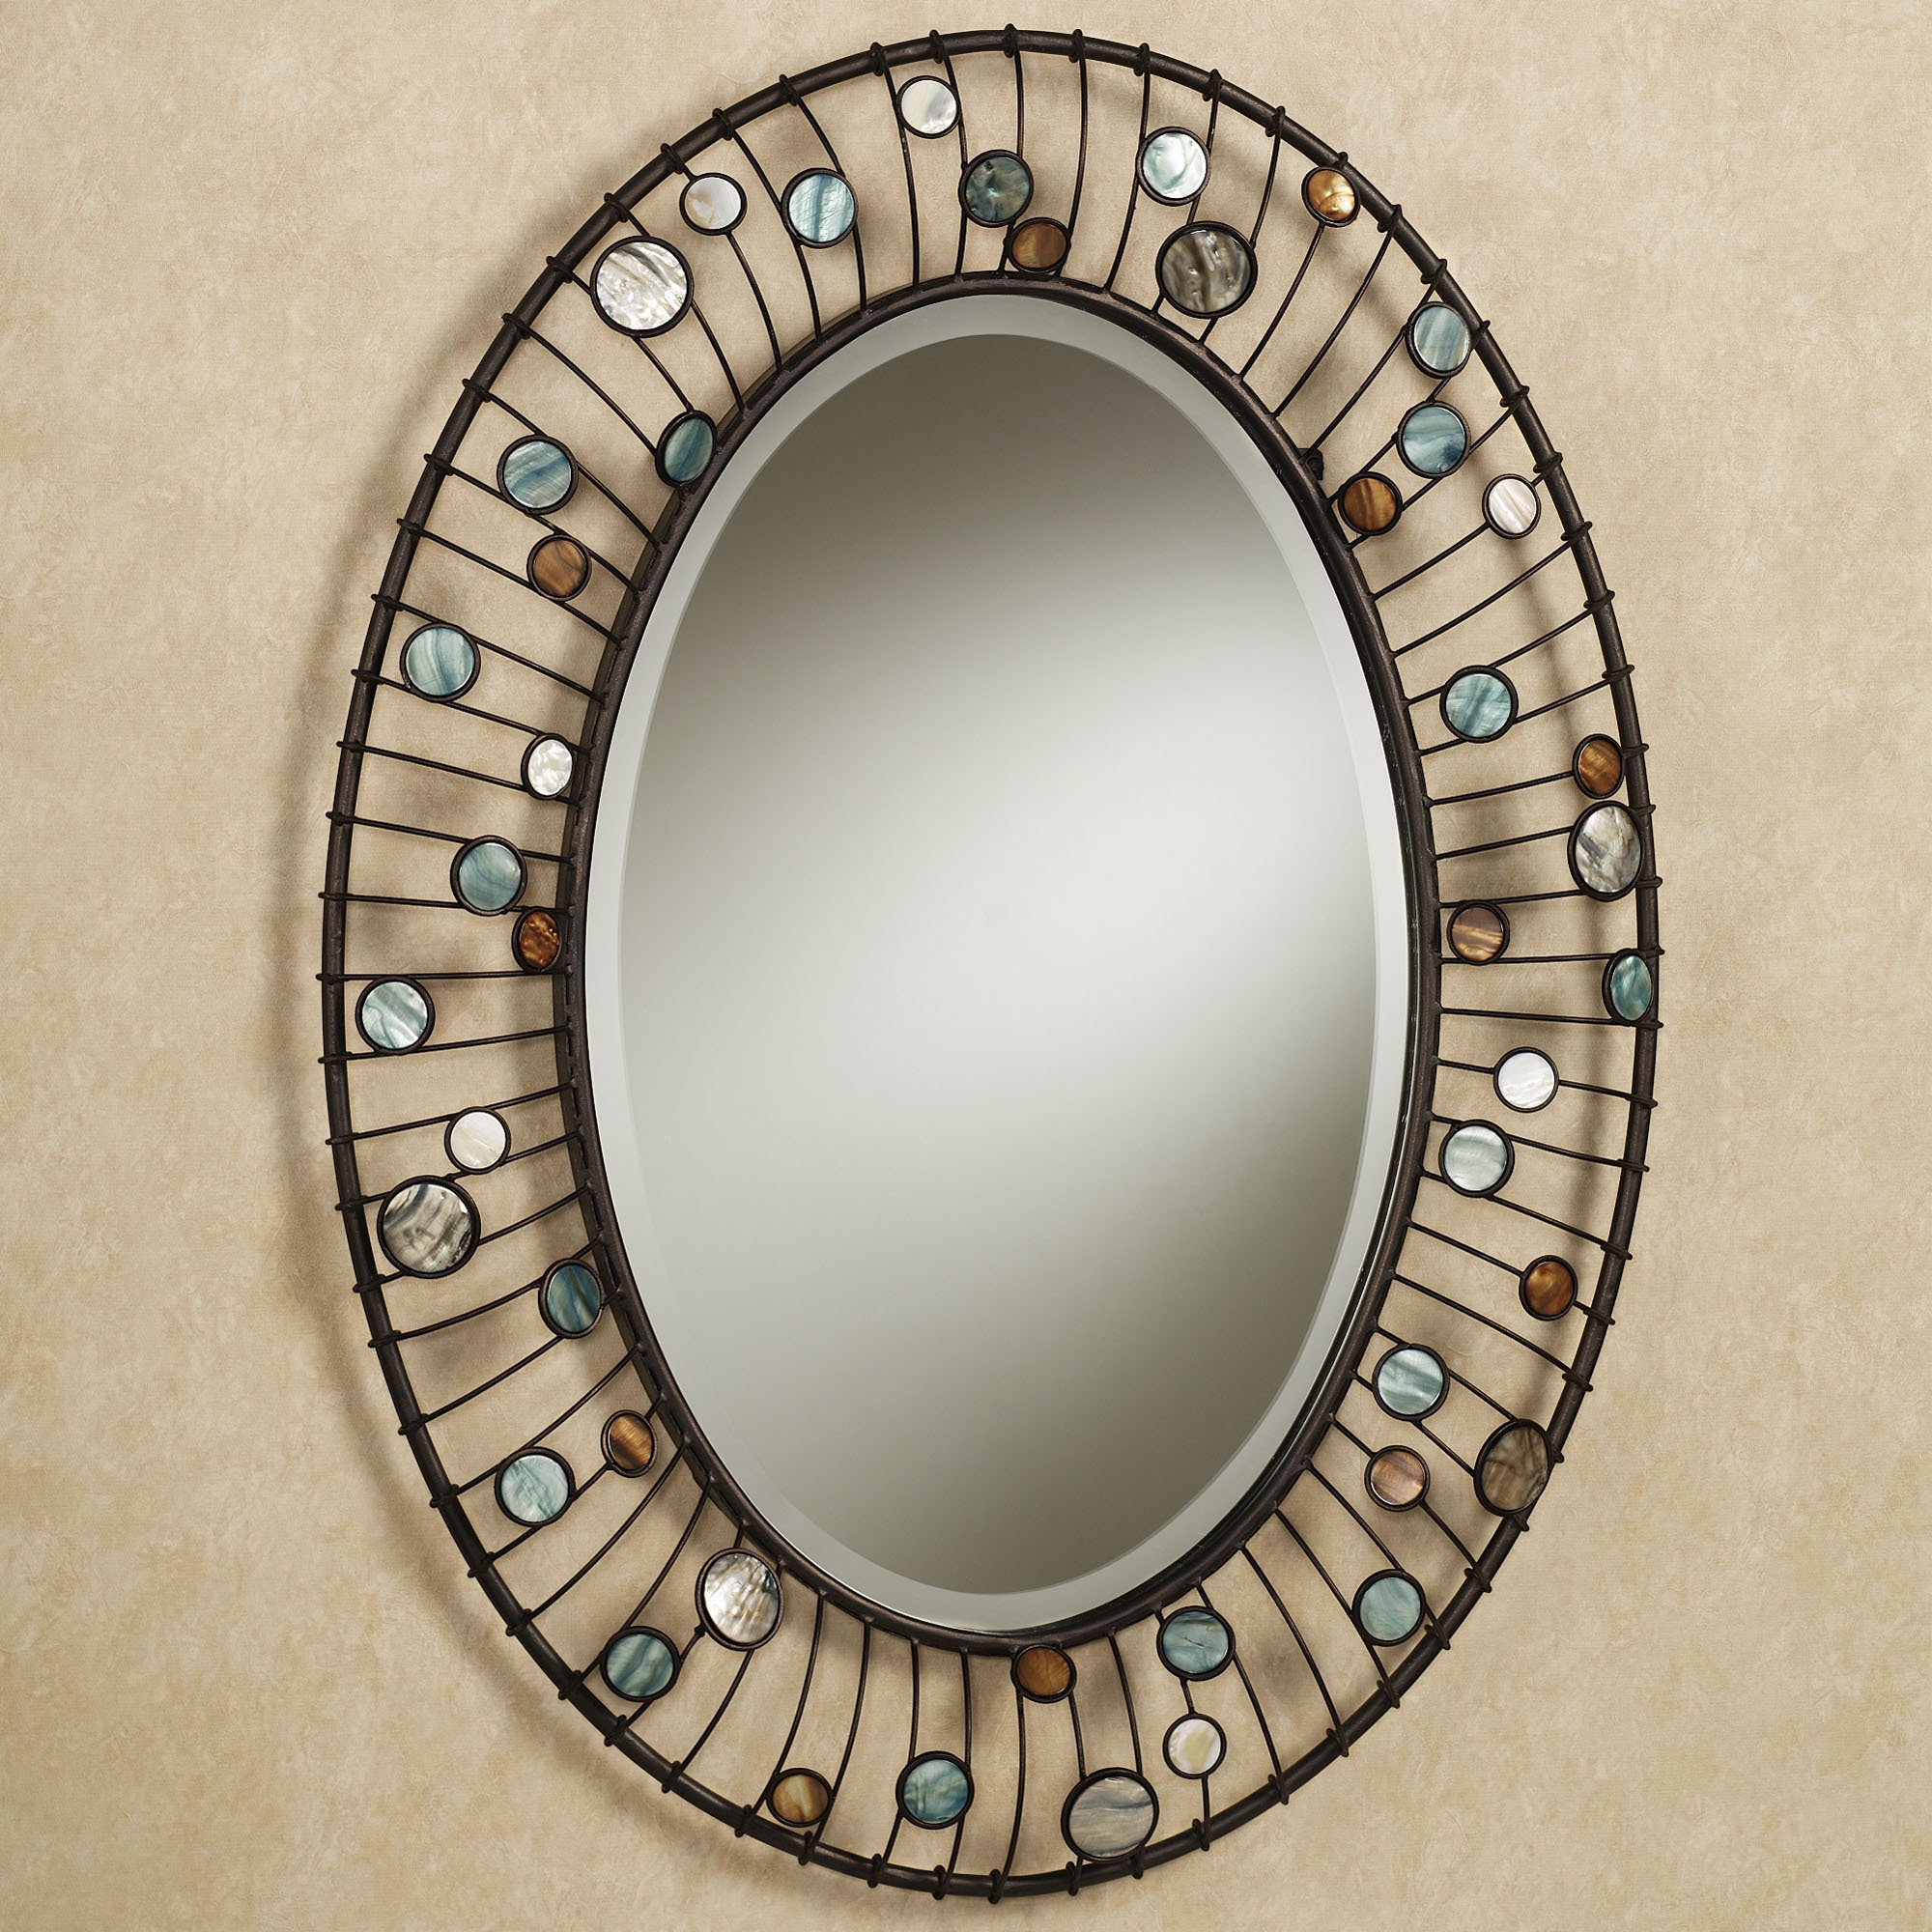 Wonderful Oval Shape Entryway Wall Mirrors With Iron Frames As Throughout Oval Mirrors For Walls (Image 15 of 15)